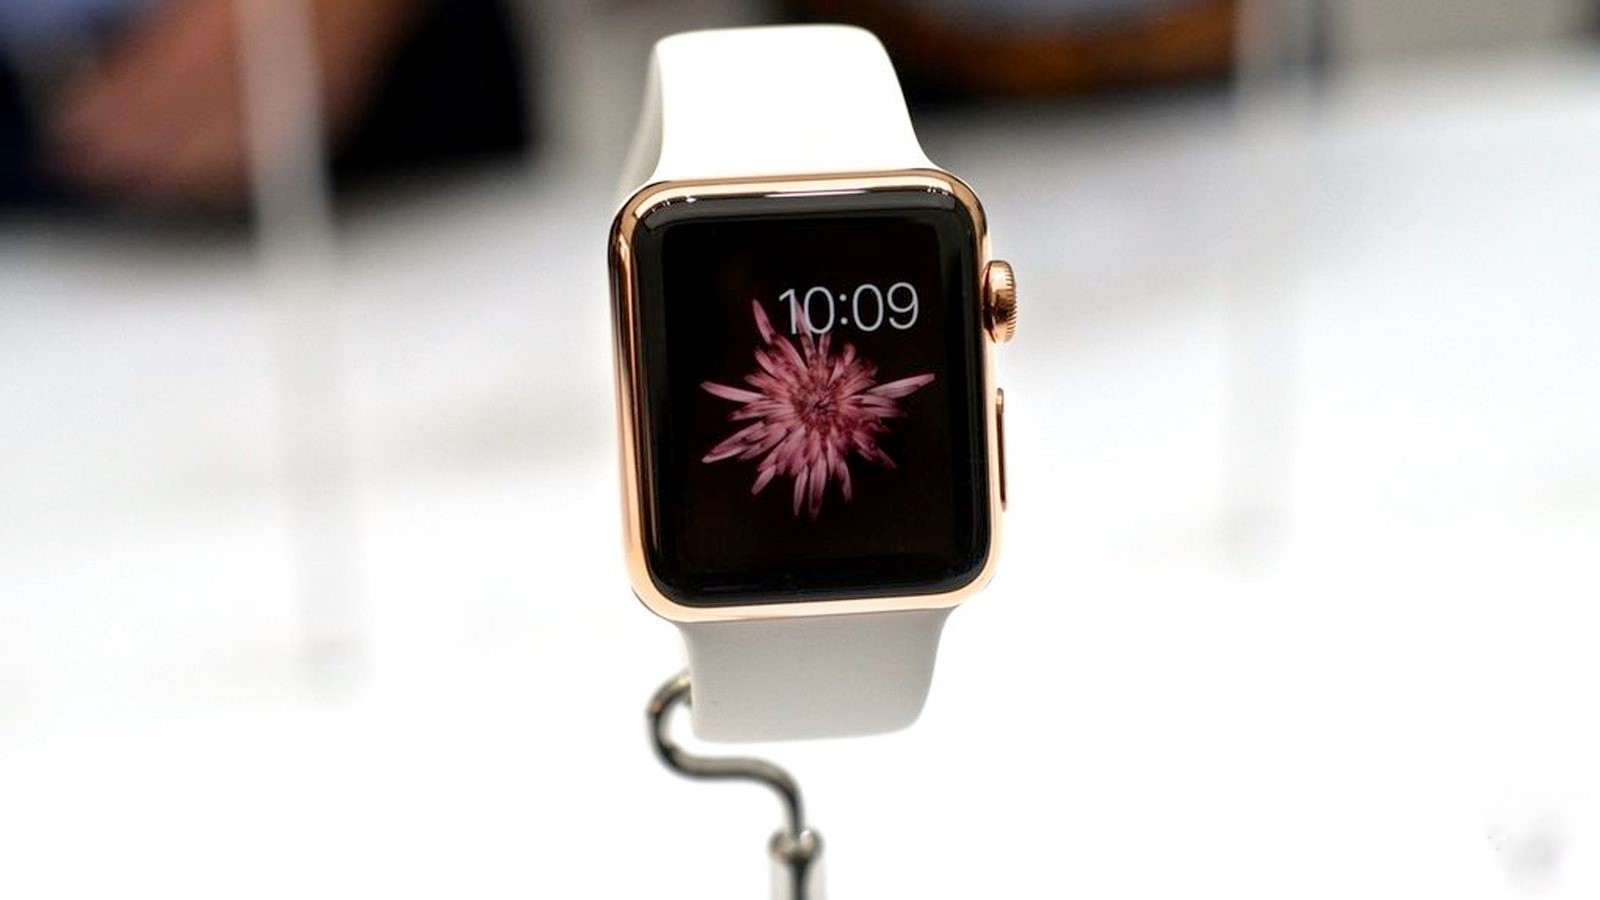 The Apple Watch will get a new collection of dials